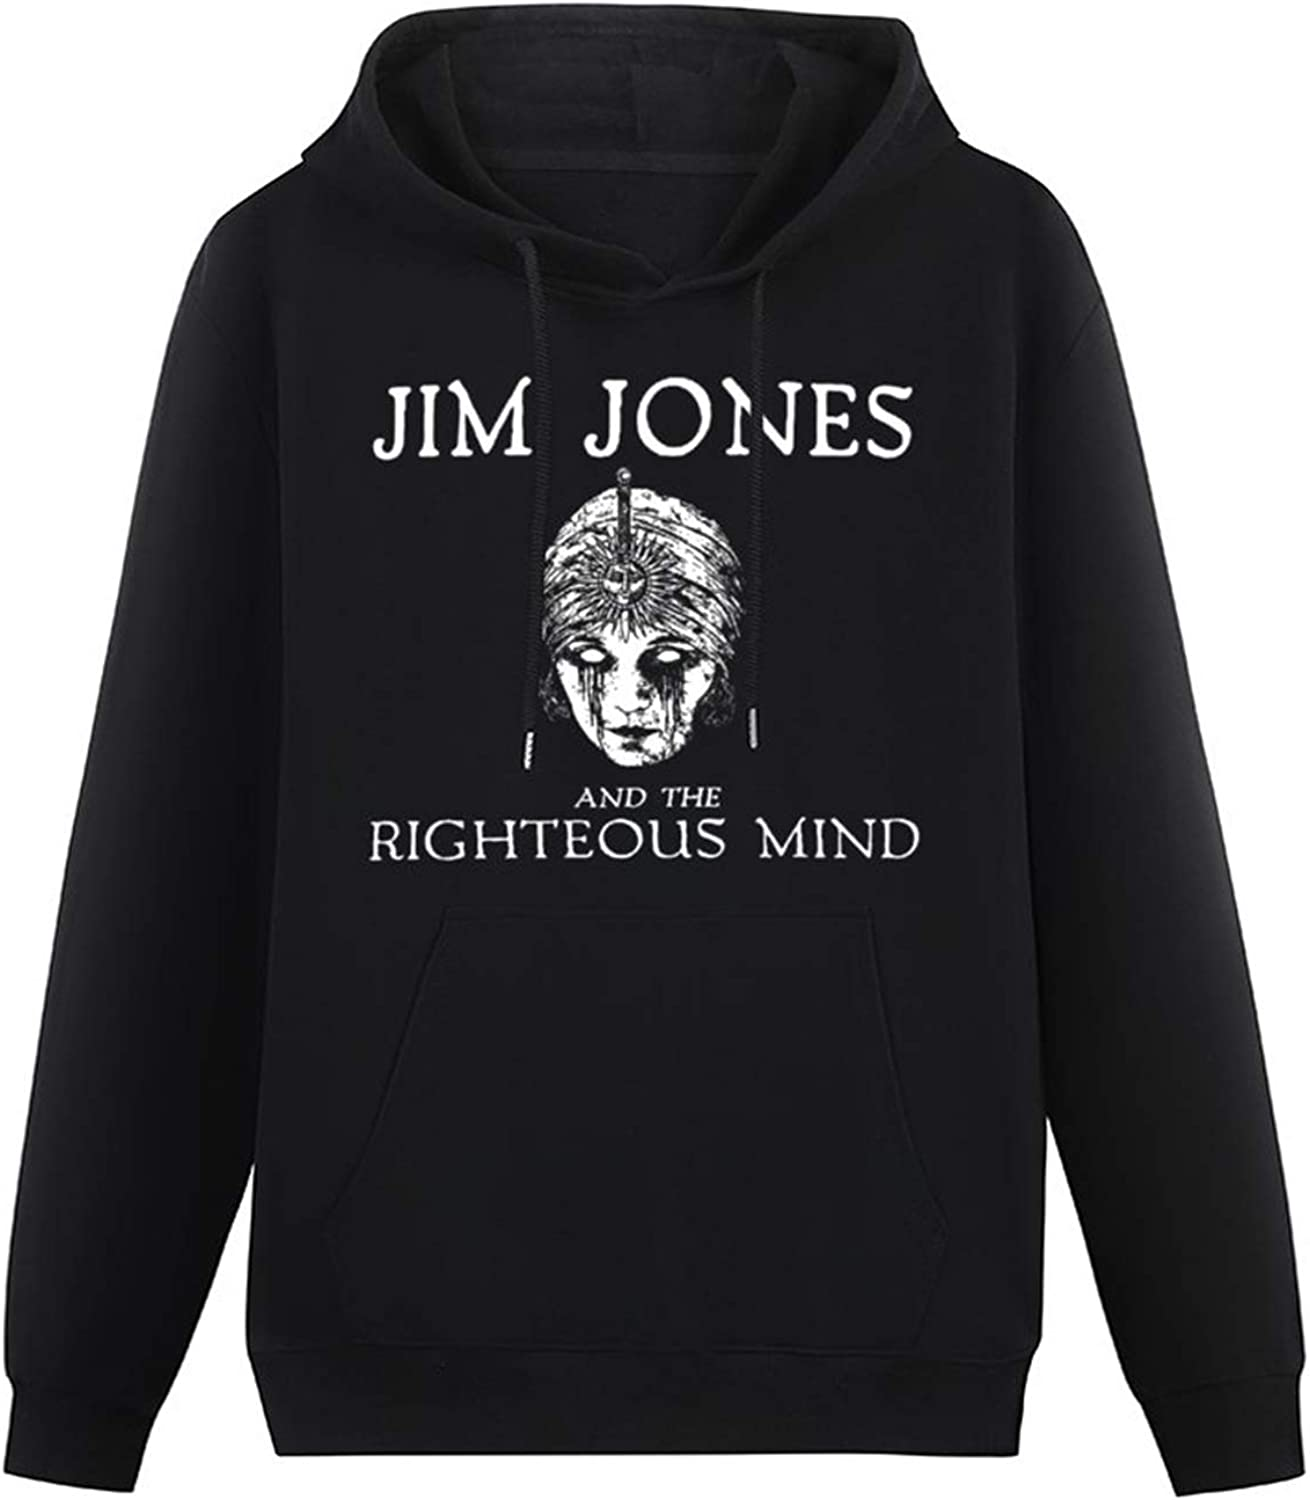 Jim Jones and The Righteous Mind Printed Lightweight Hoodie for Teenager Long Sleeve Hooded Pullover Sweatshirts Black